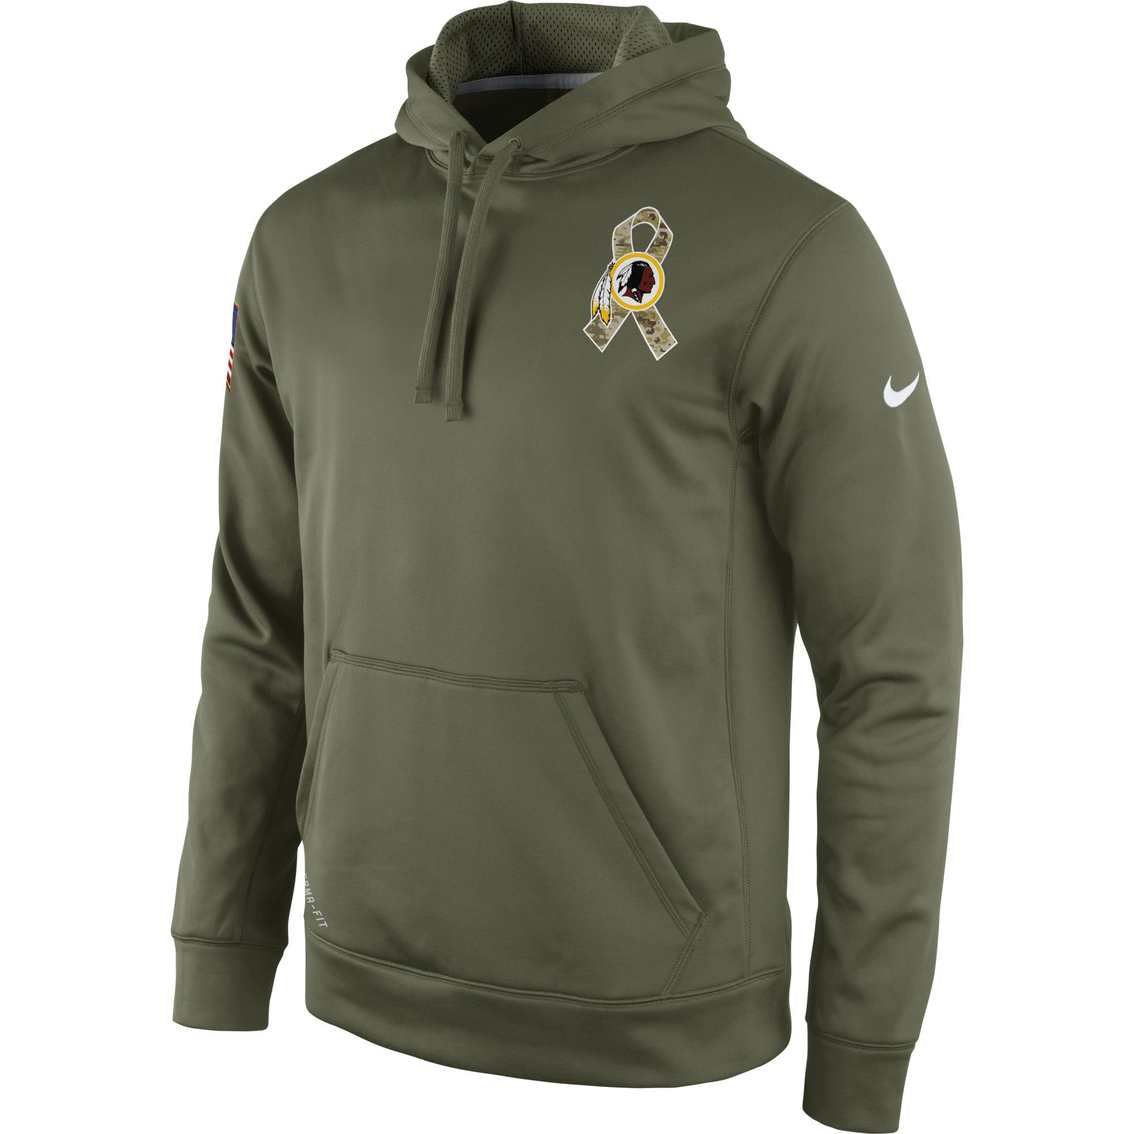 promo code 1ed6c eb8c5 Nike Nfl Washington Redskins Men's Salute To Service Hoodie ...